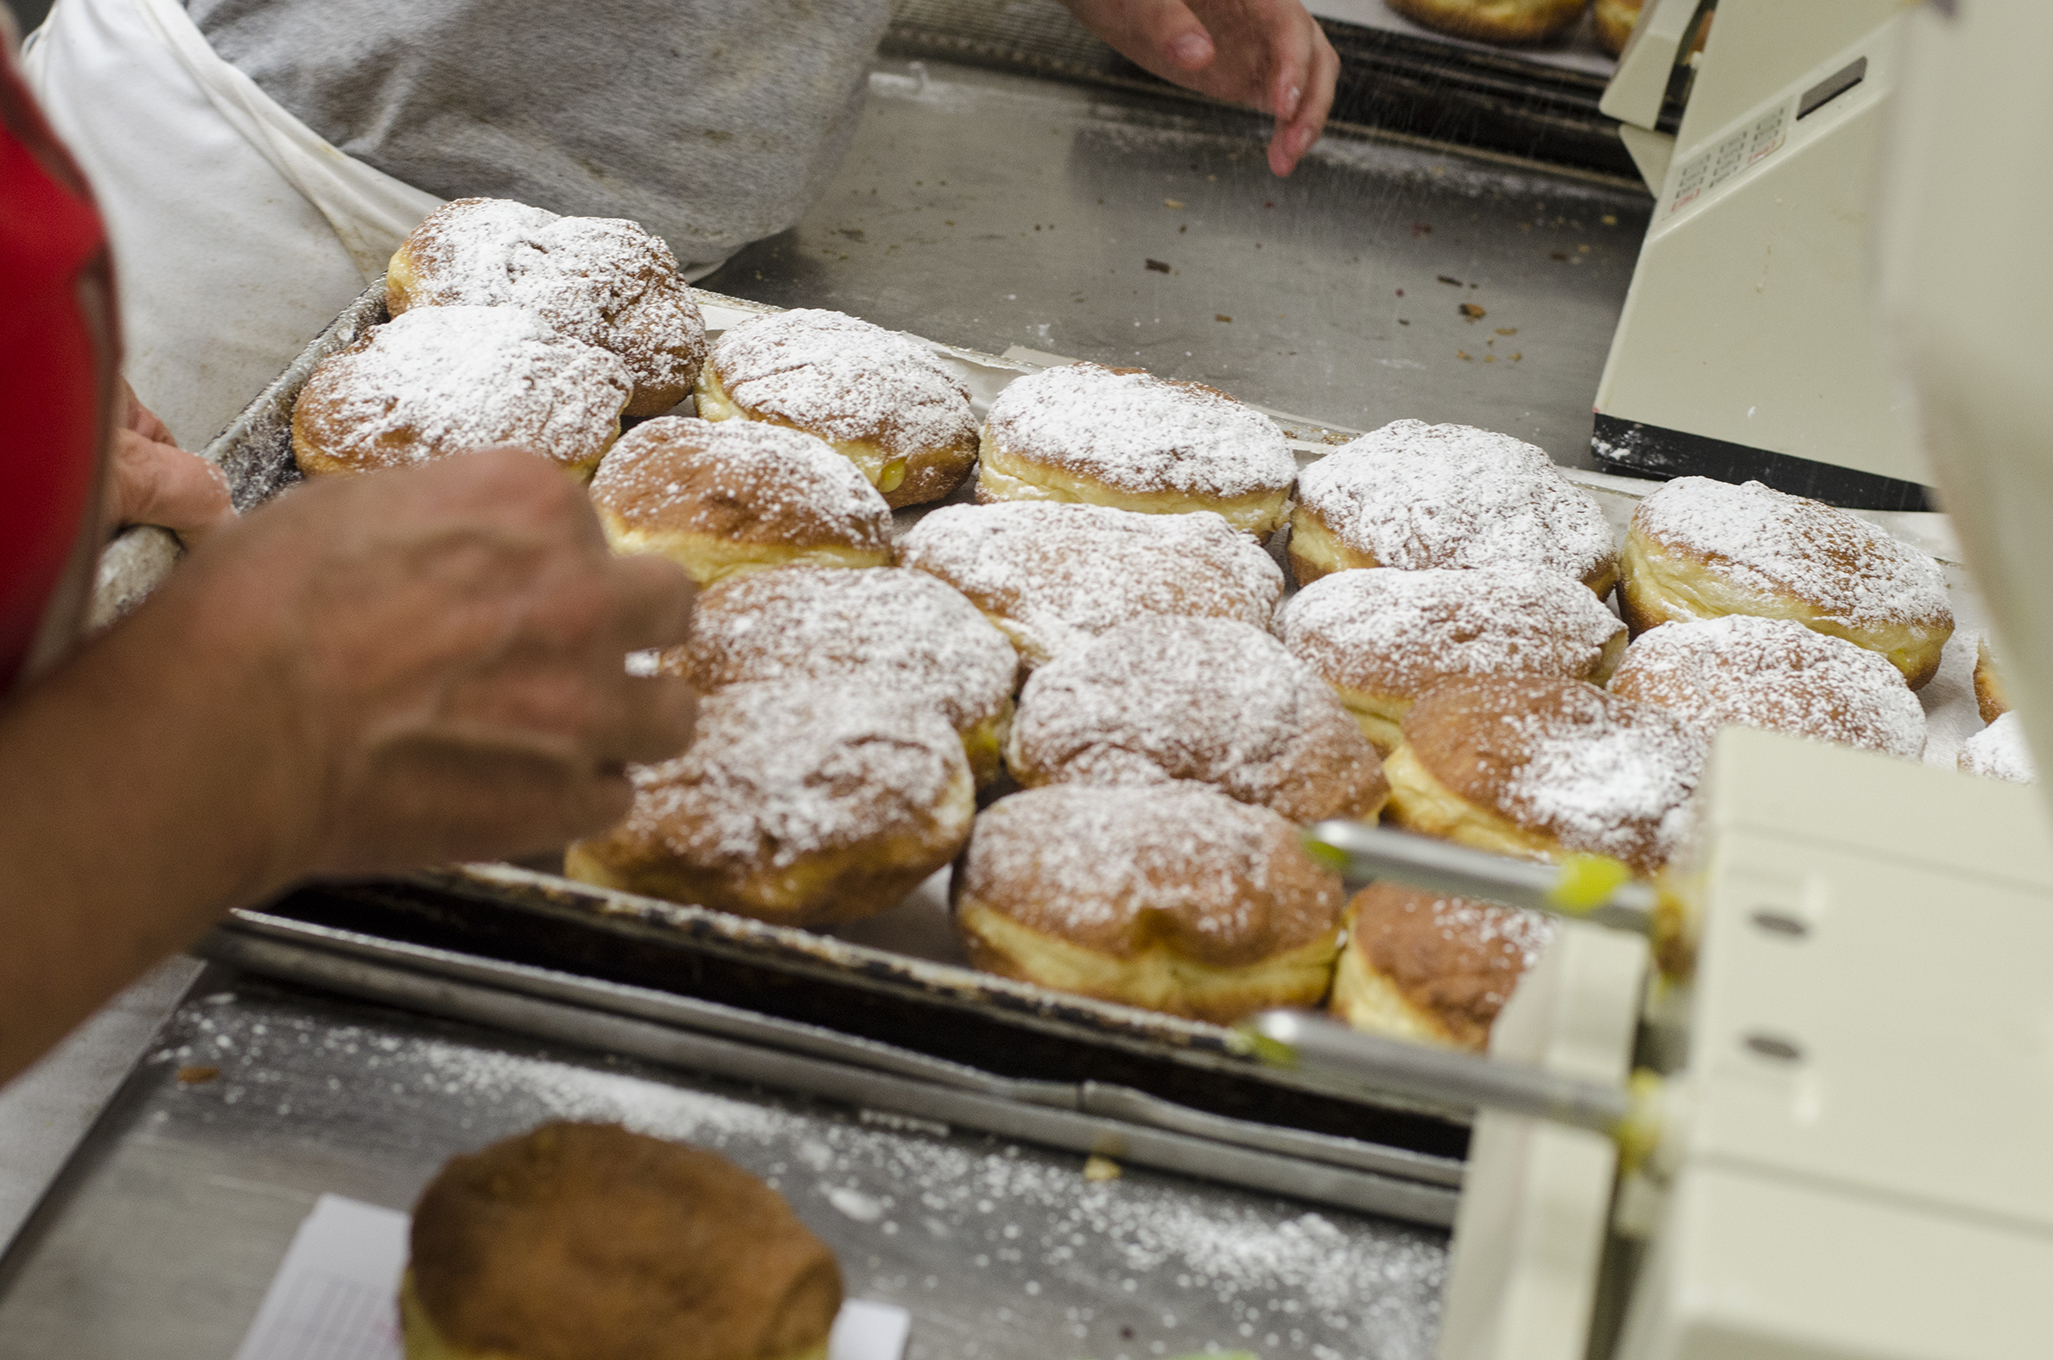 Filling up some paczki at Blak's Bakery in Windsor, Ontario.